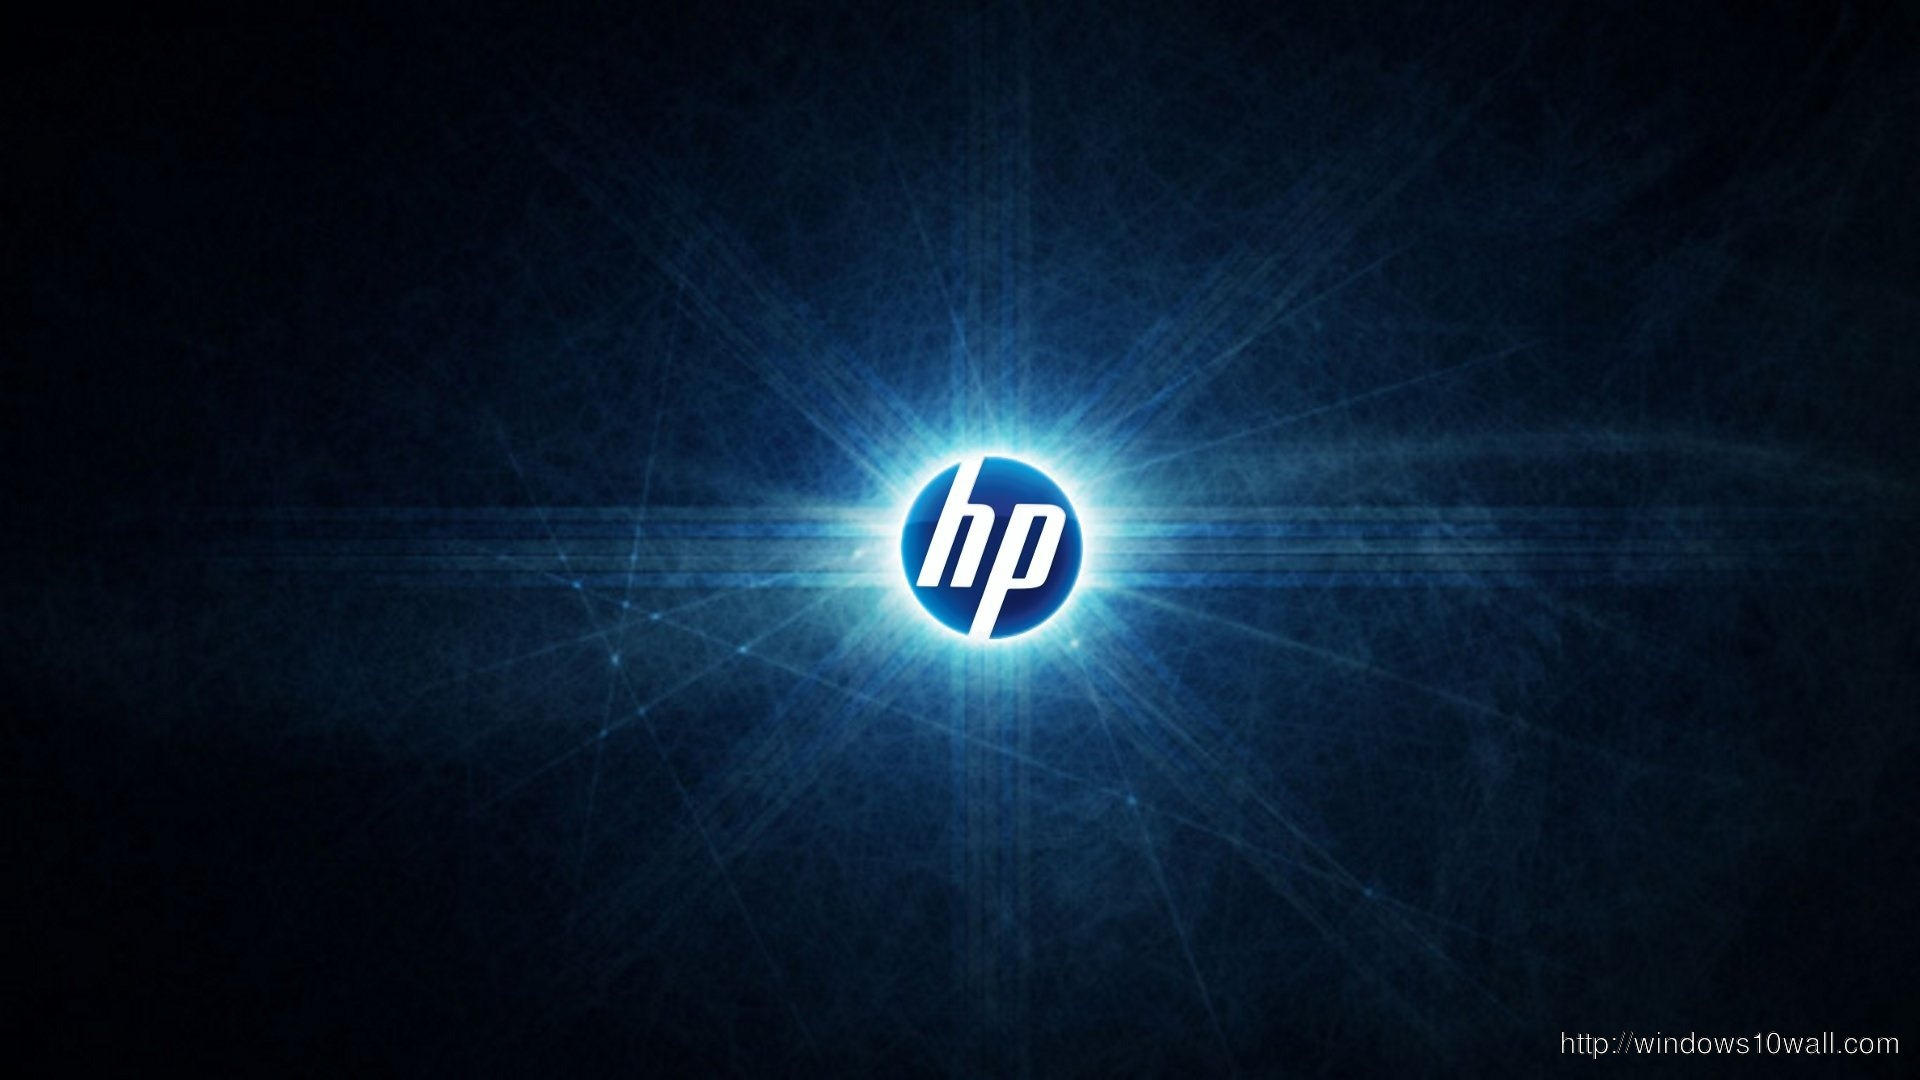 HP Dark Background Wallpaper